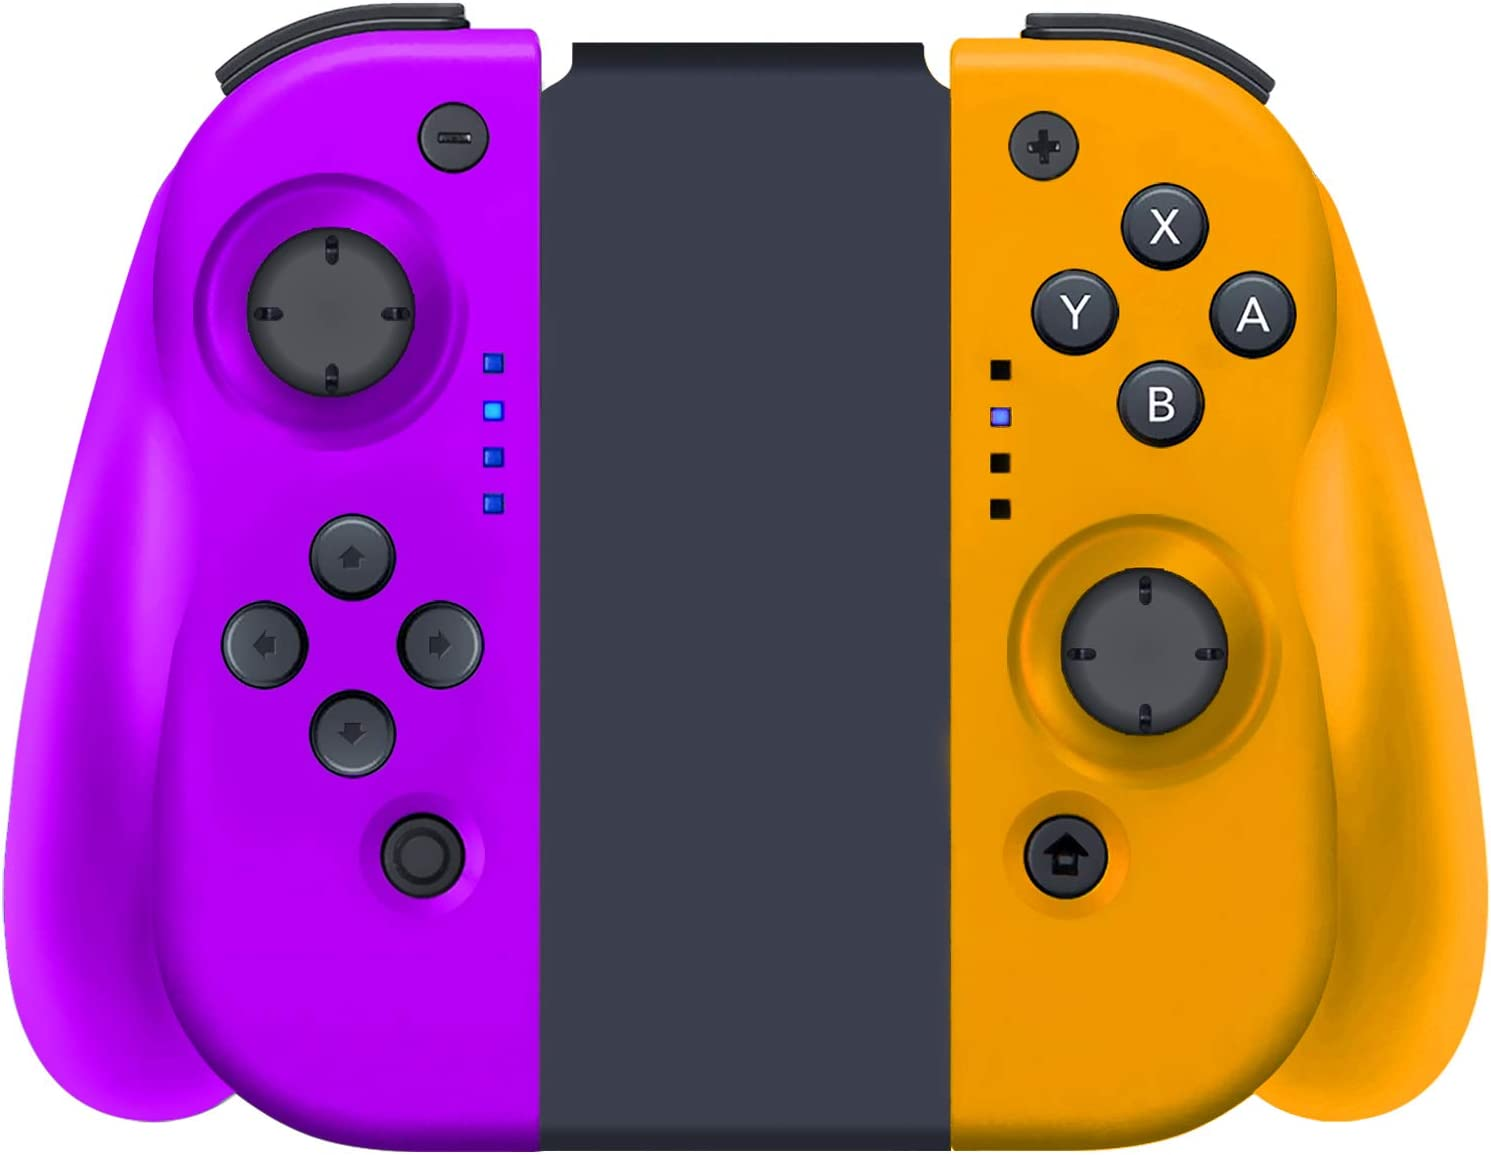 YHT Wireless Joy Con Controller for Nintendo Switch, Replacement Joy Pad Controllers Compatible for Nintendo Switch Console,Comfortable Handheld Gamepad(Purple&Yellow)